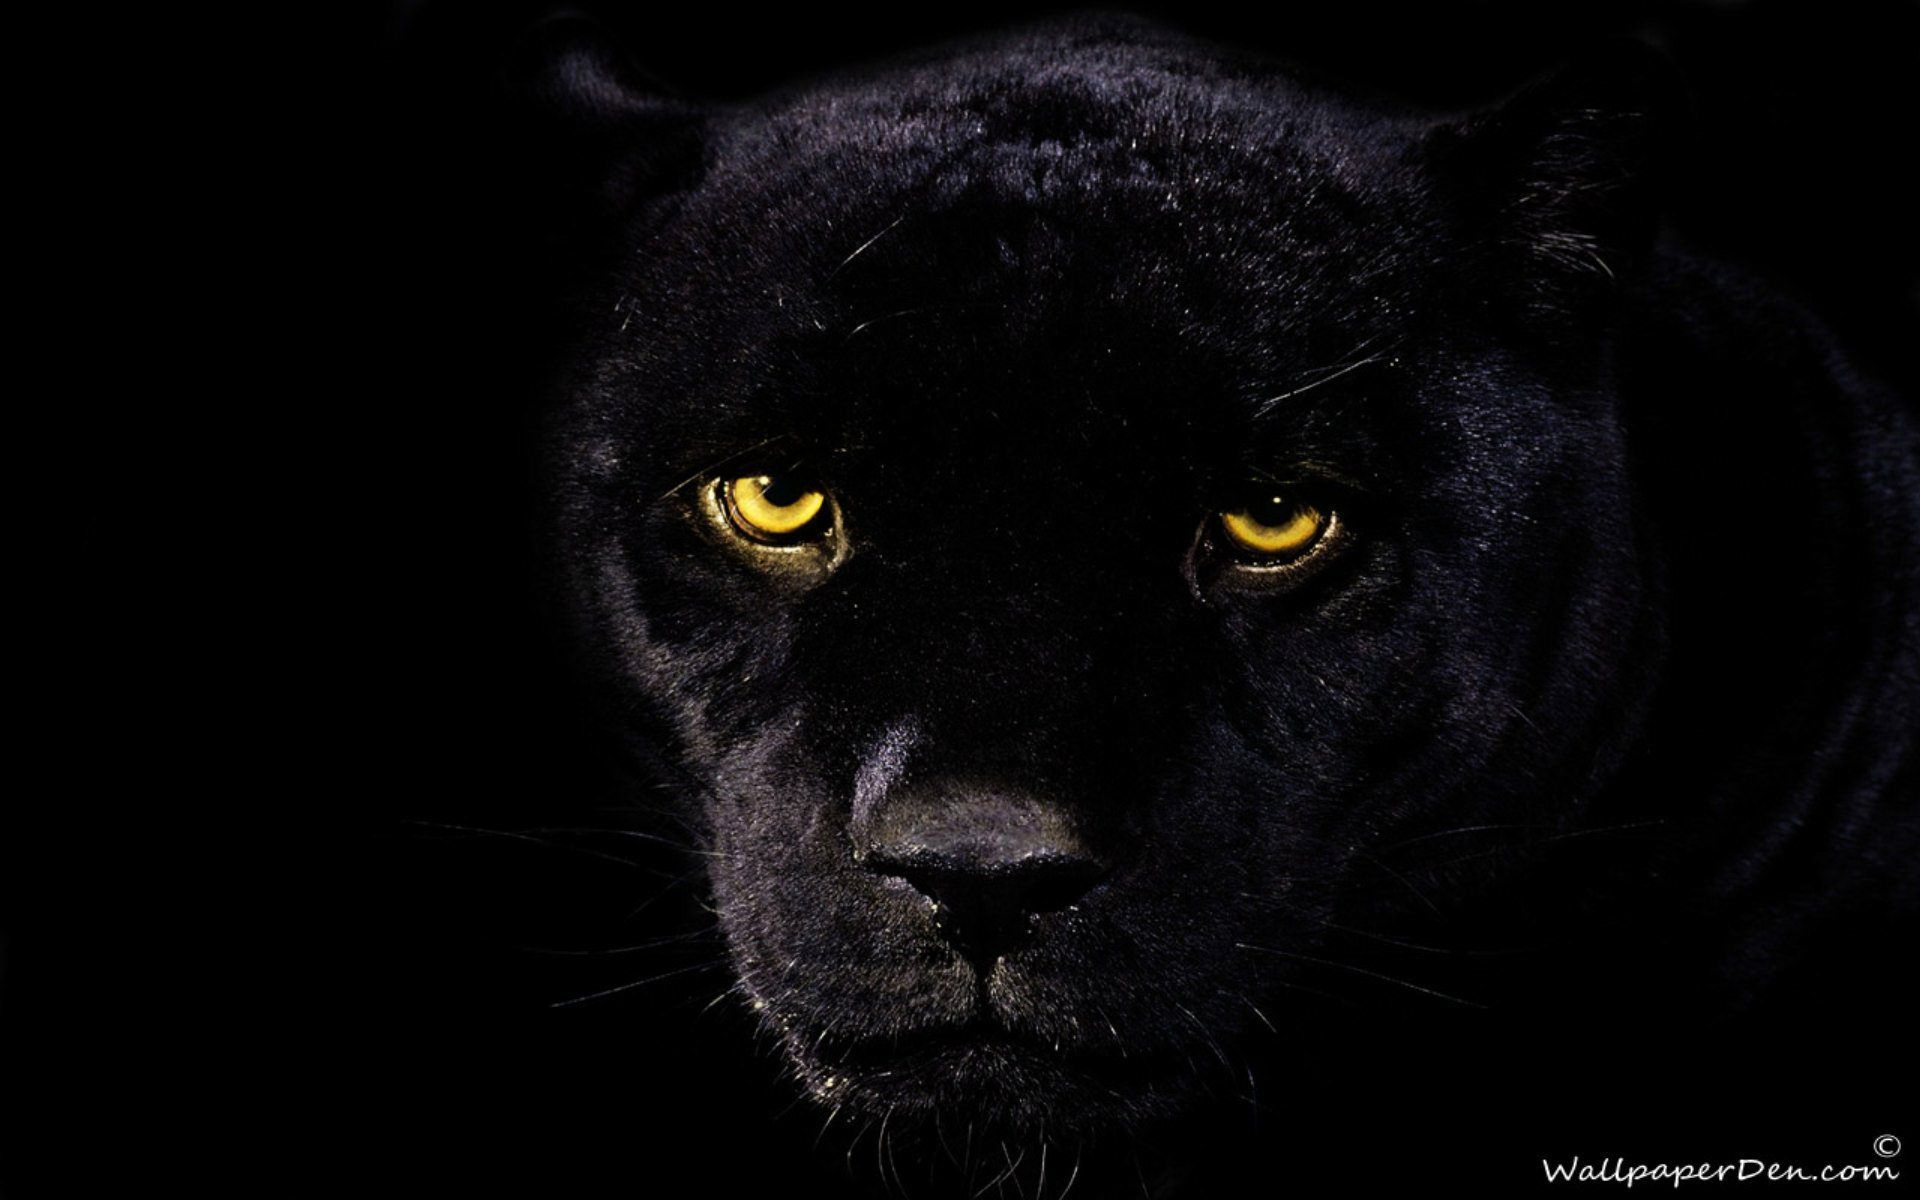 Black Jaguar Wallpapers Wallpaper Cave Black Panther Hd Wallpaper Black Panther Jaguar Wallpaper